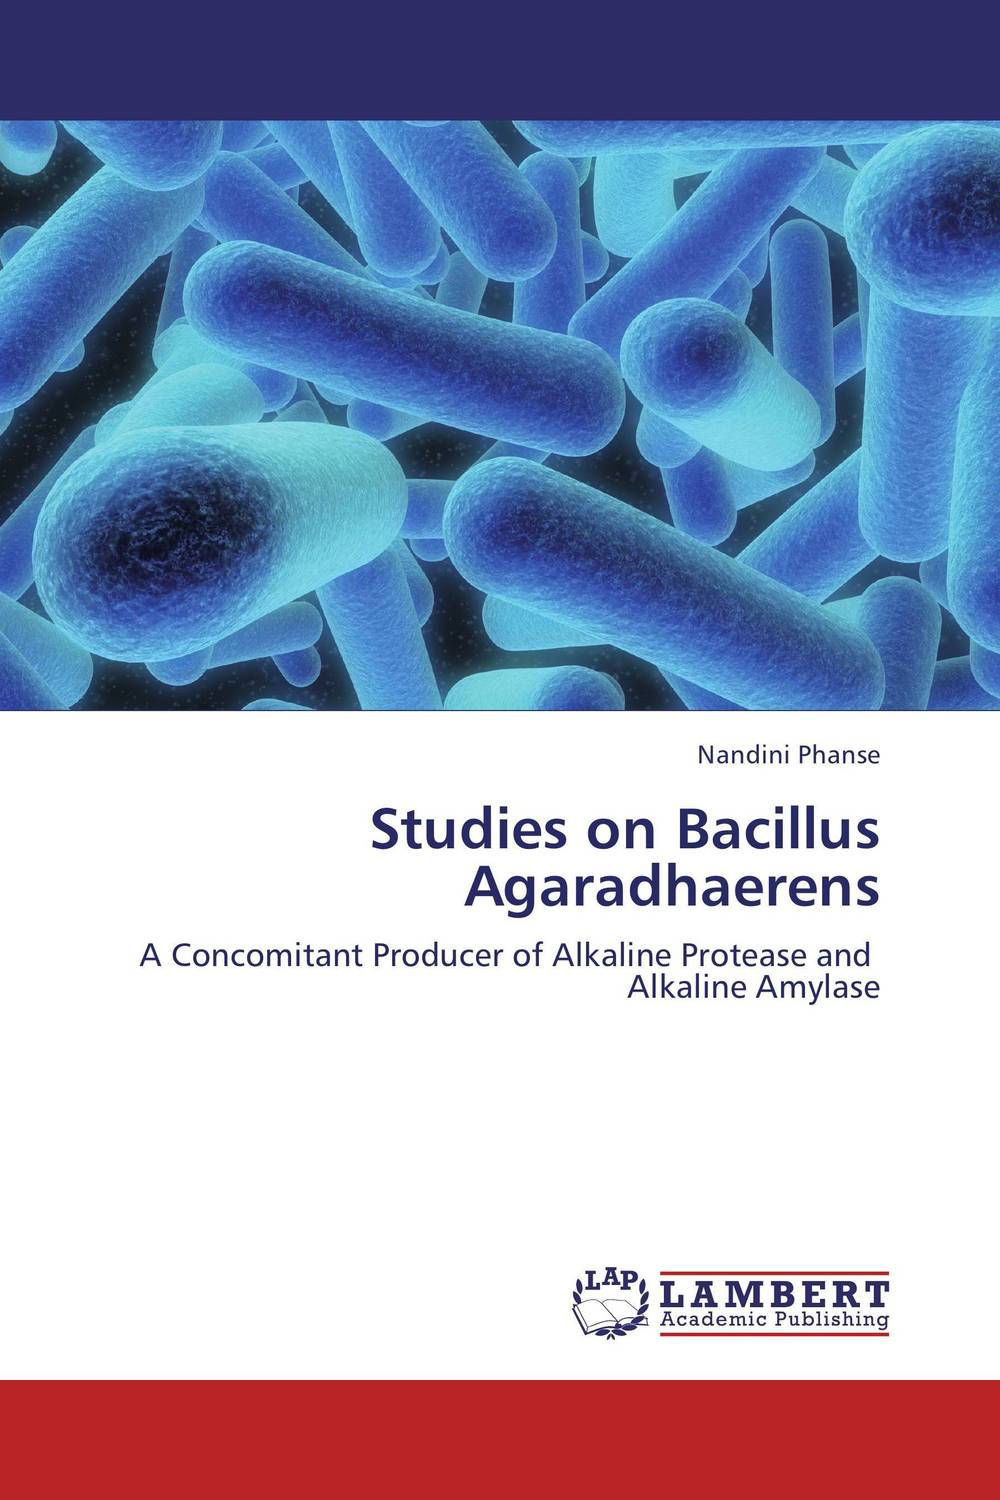 Studies on Bacillus Agaradhaerens microbial production of amylase in bacillus cereus sp